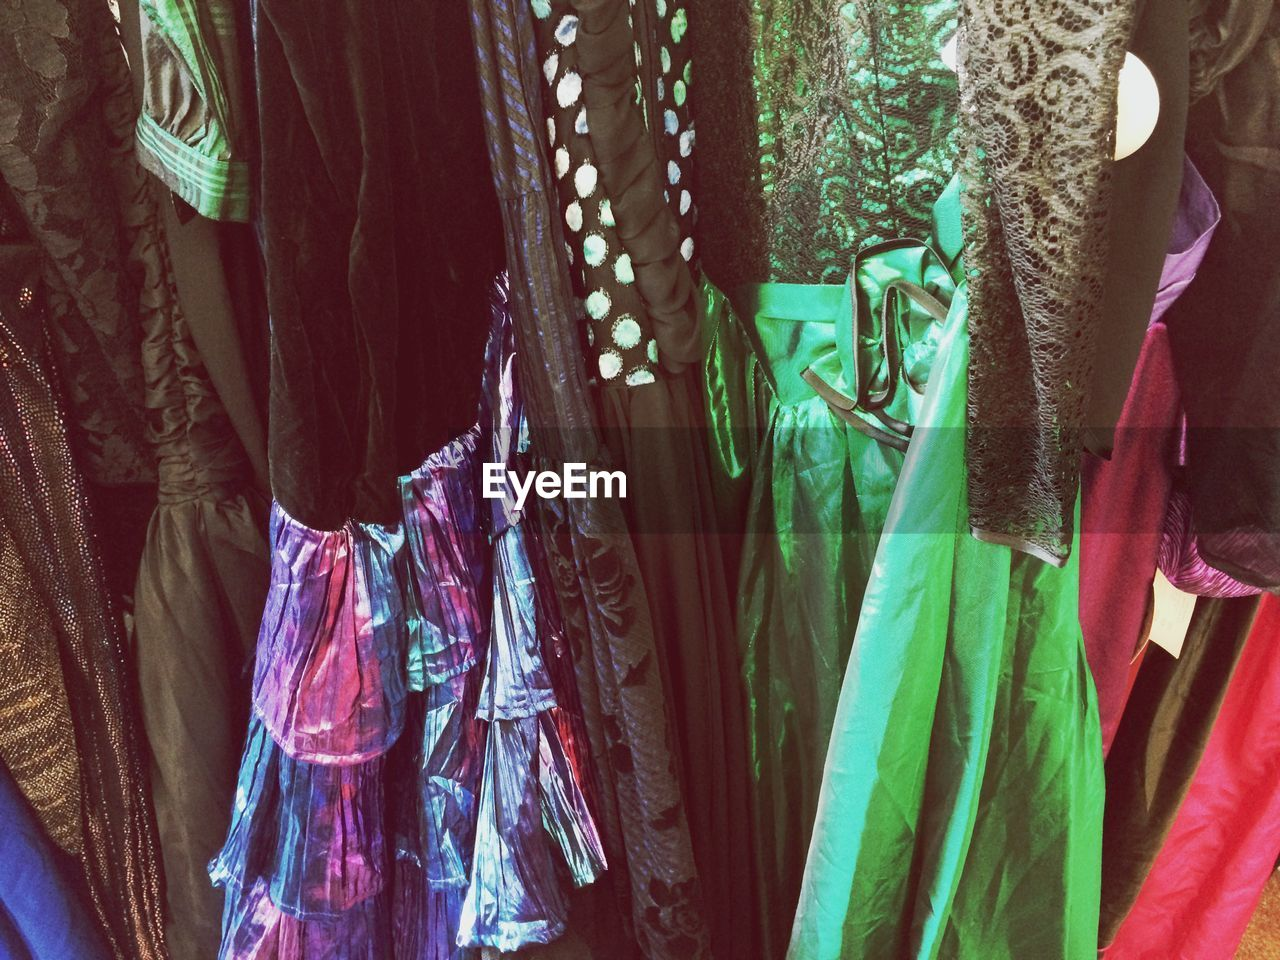 for sale, hanging, retail, variation, clothing, textile, market, market stall, fabric, choice, no people, multi colored, cloth, indoors, day, close-up